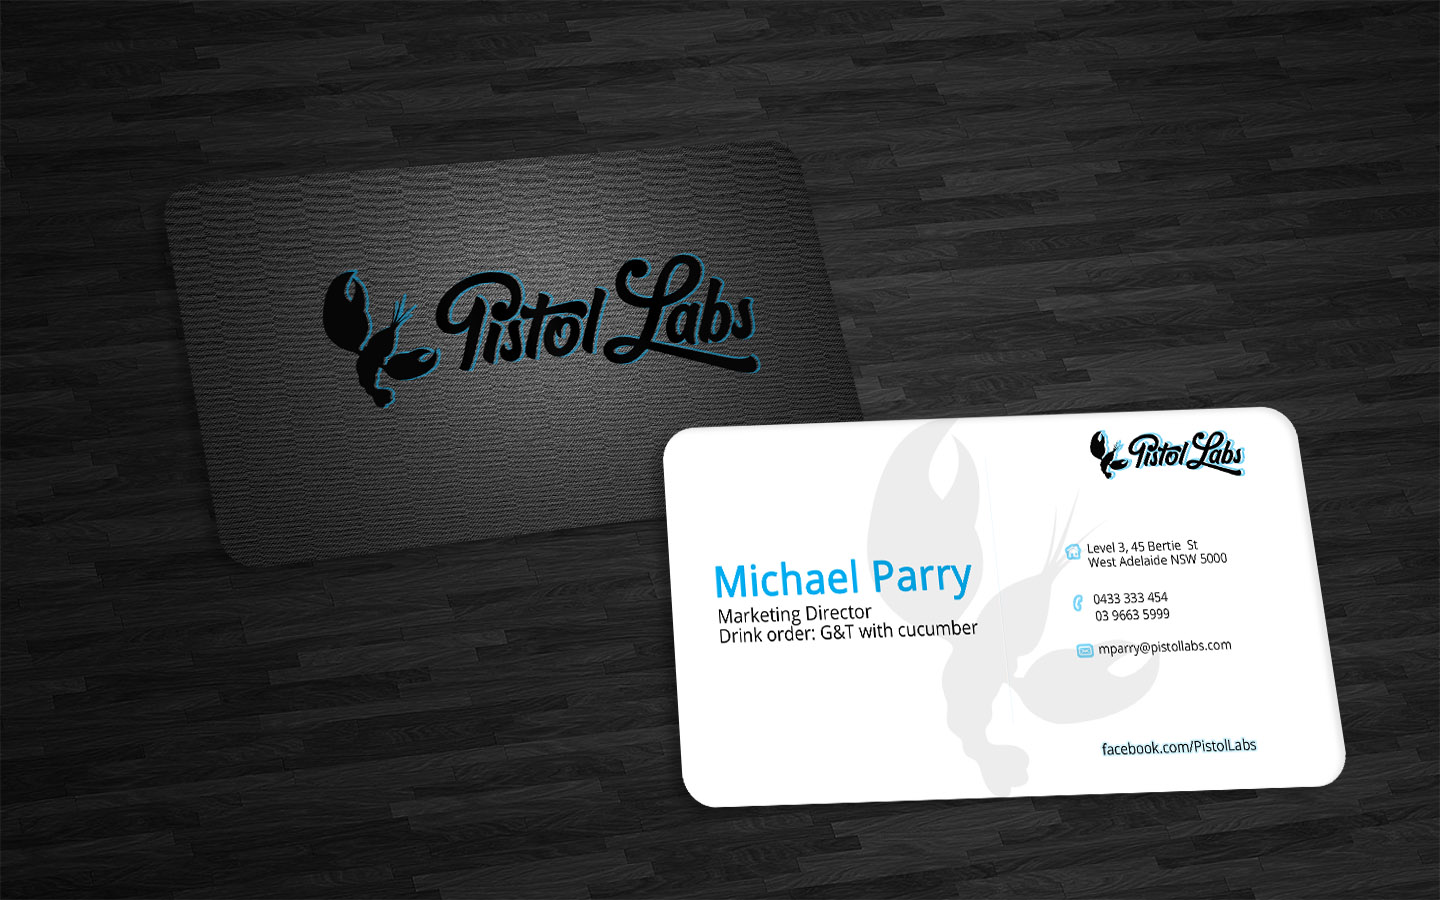 Digital business card design for a company by gl design 2382901 business card design by gl for this project design 2382901 reheart Images